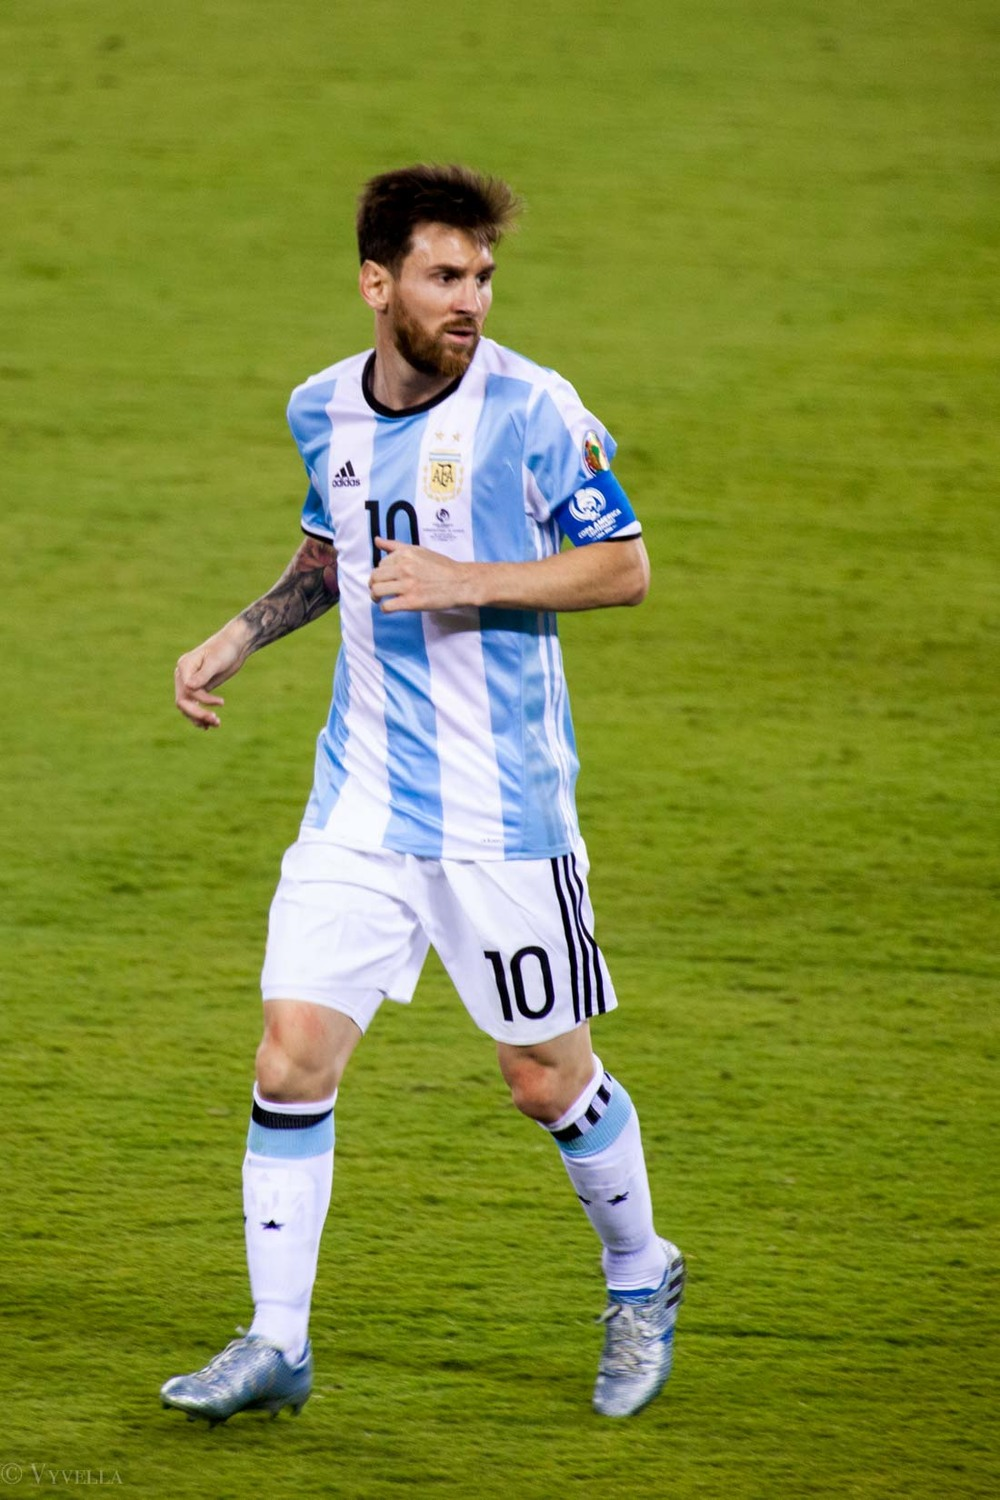 lifestyle_lionel-messi-on-copa-america-2016-final_01.jpg